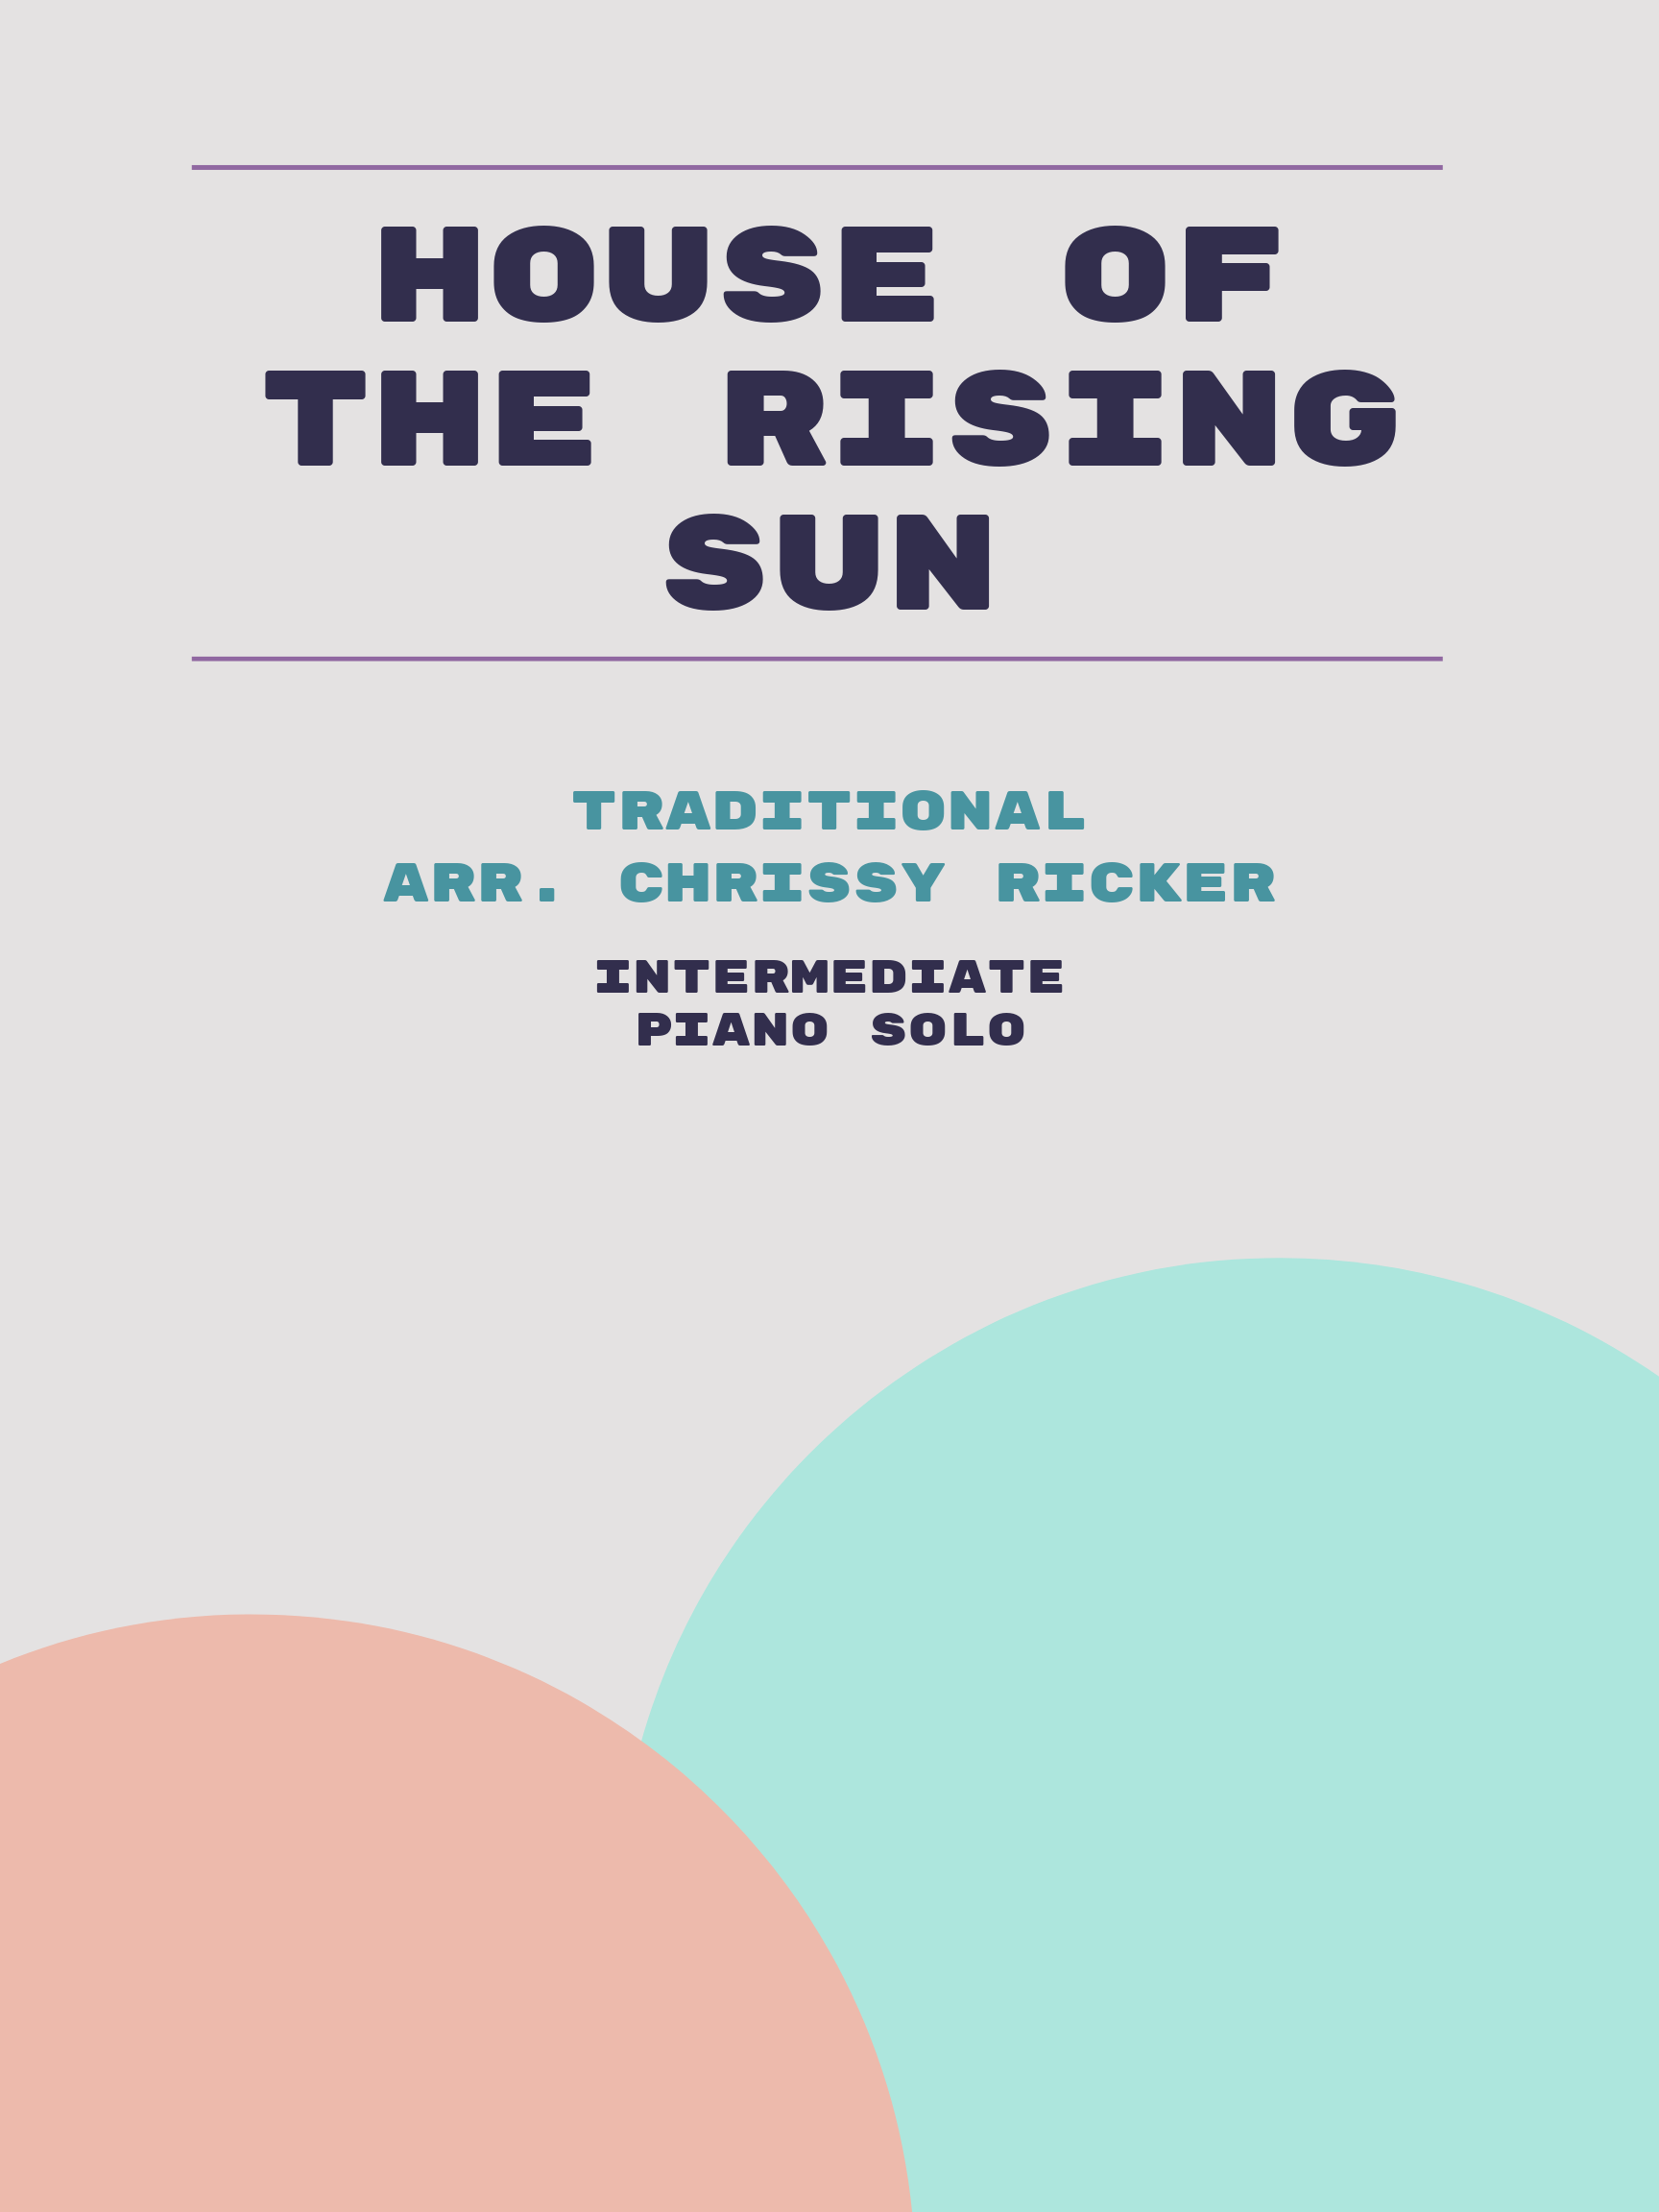 House of the Rising Sun by Traditional